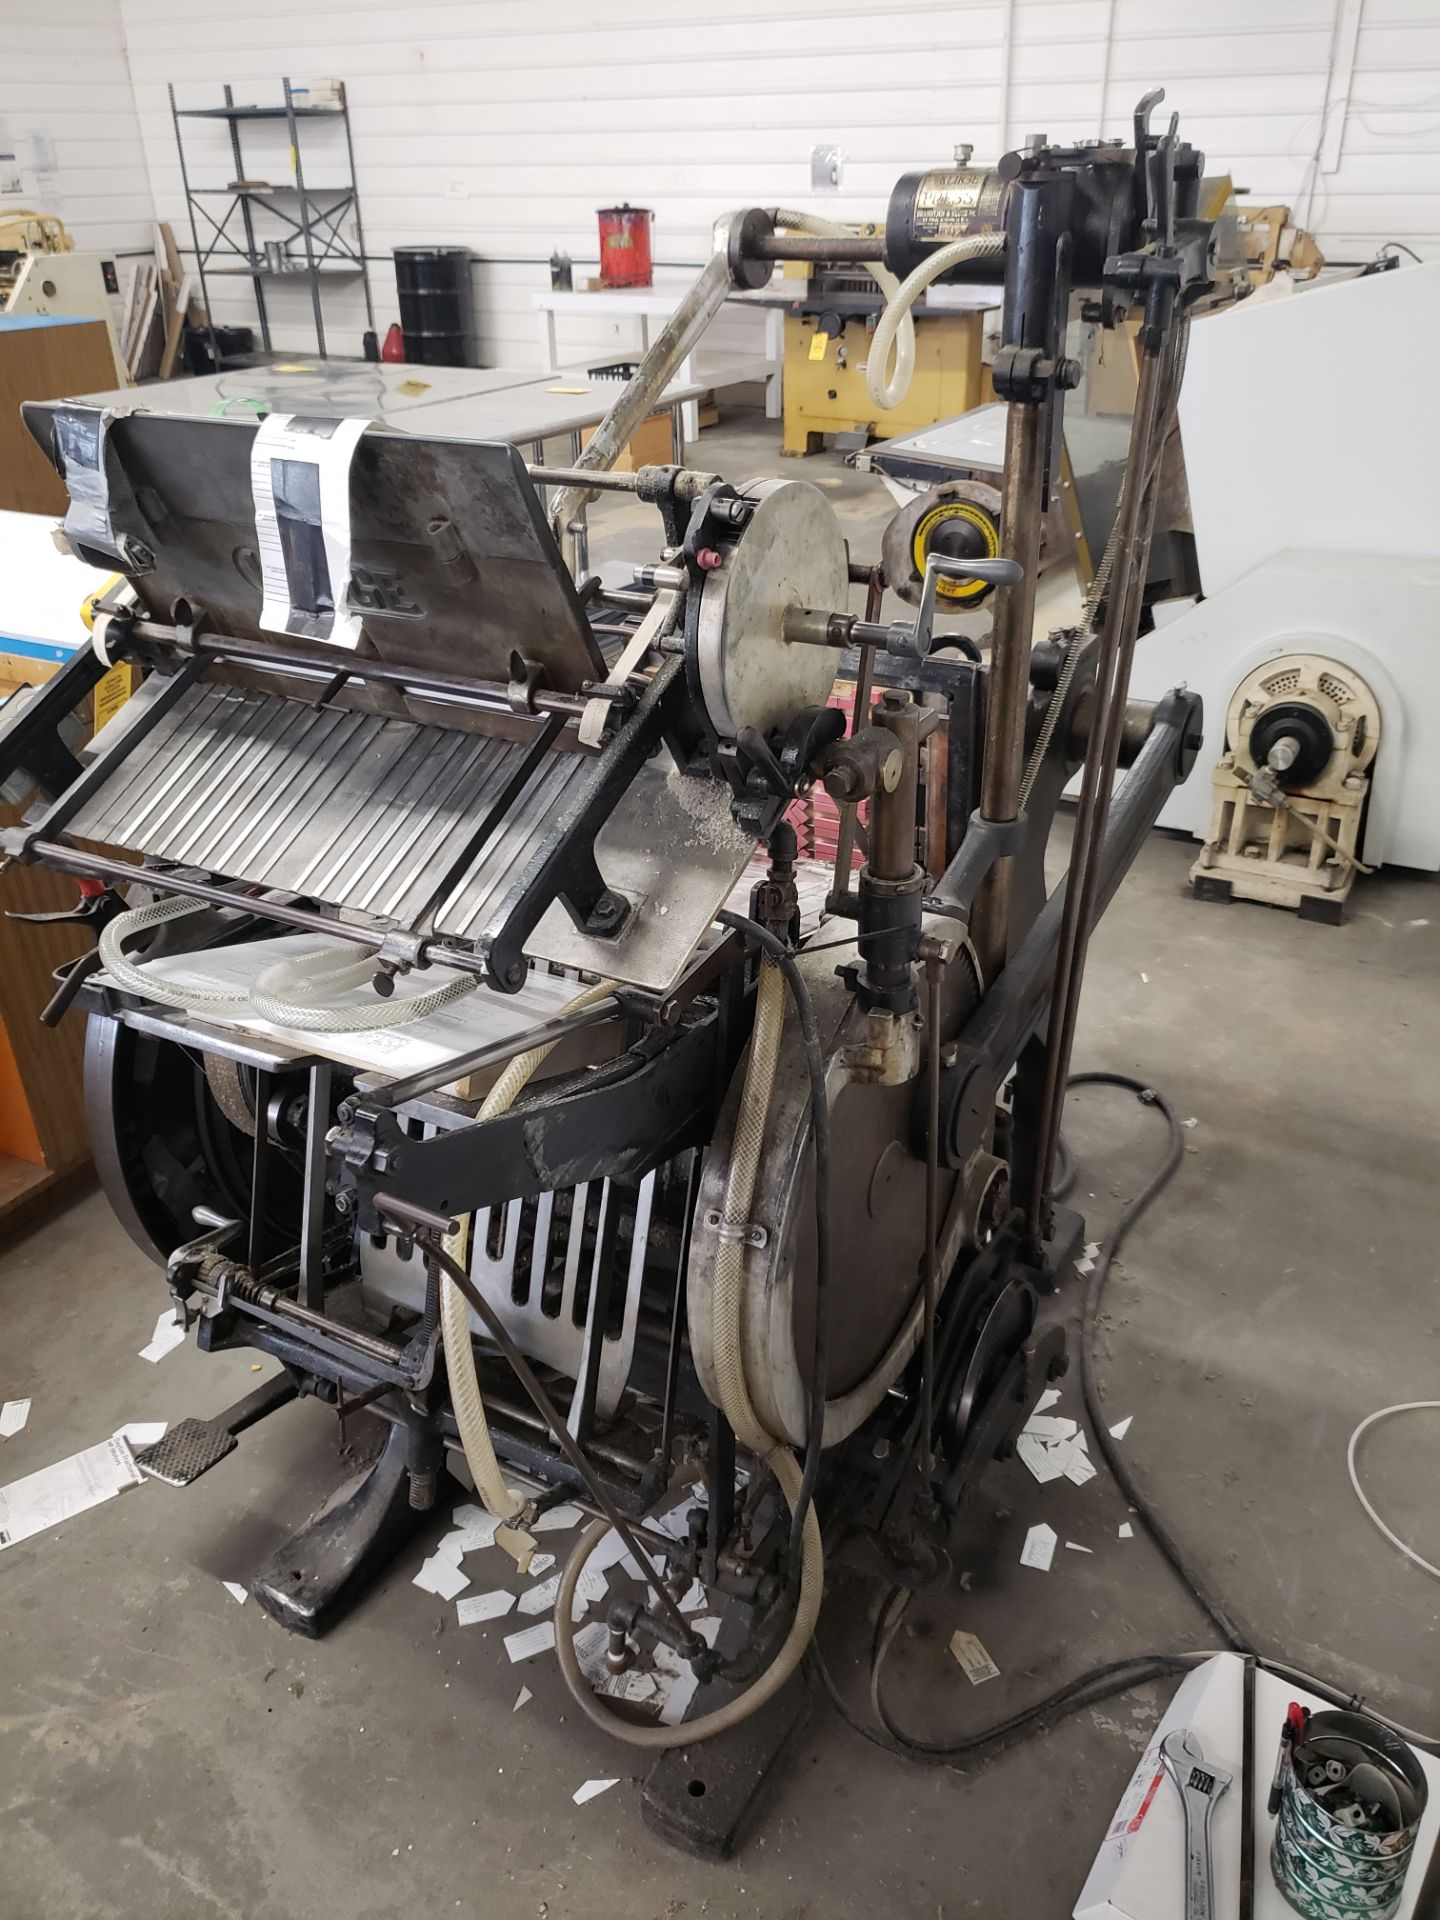 Lot 5045 - KLUGE AUTOMATIC PLATEN LETTER PRESS MACHINE# NB1211665 (LOCATED AT: 16335 LIMA ROAD BLDG. 4